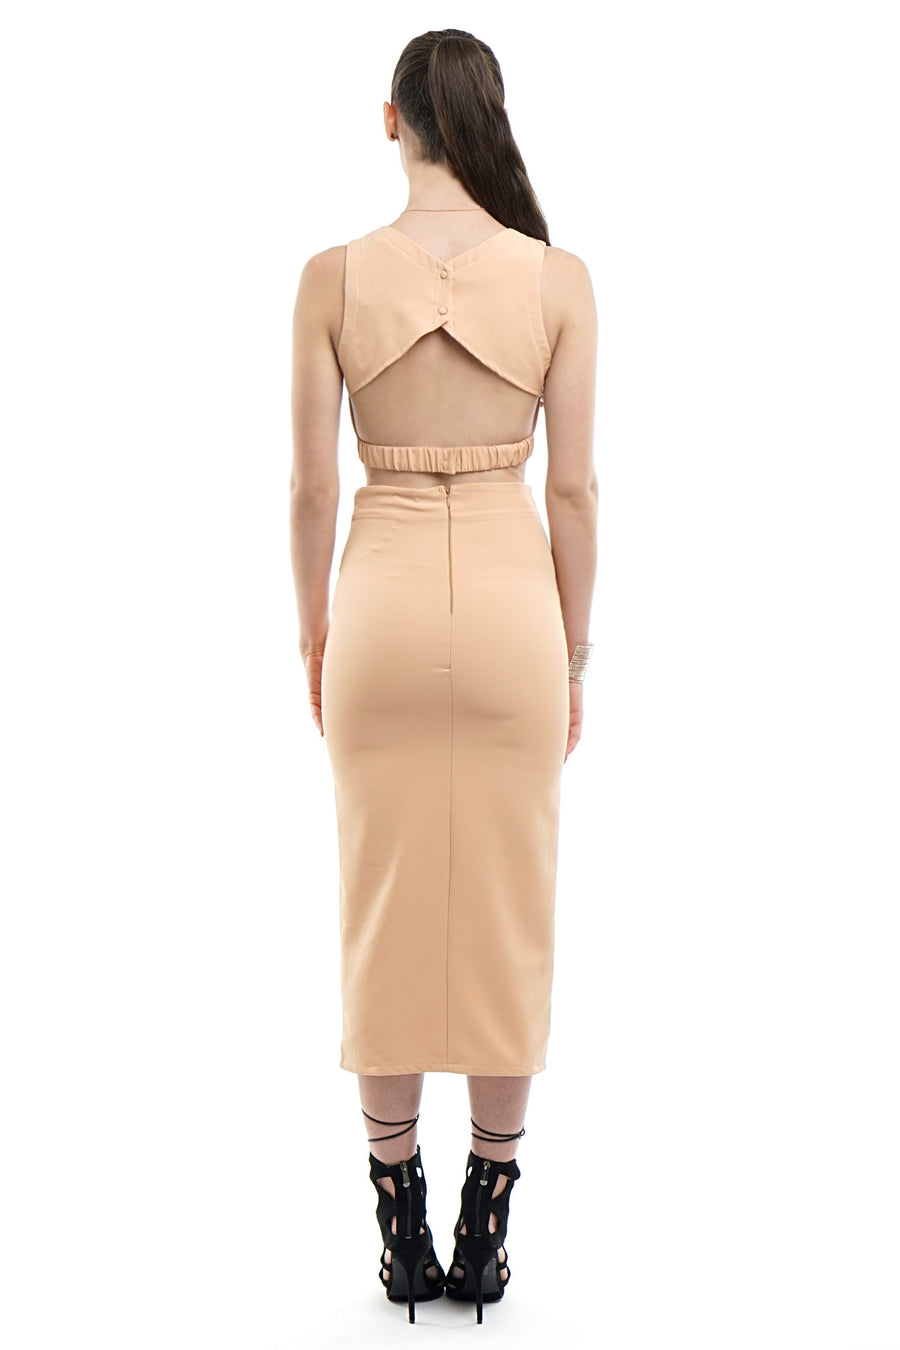 Nude-Peach Two-Piece Top and Skirt Set